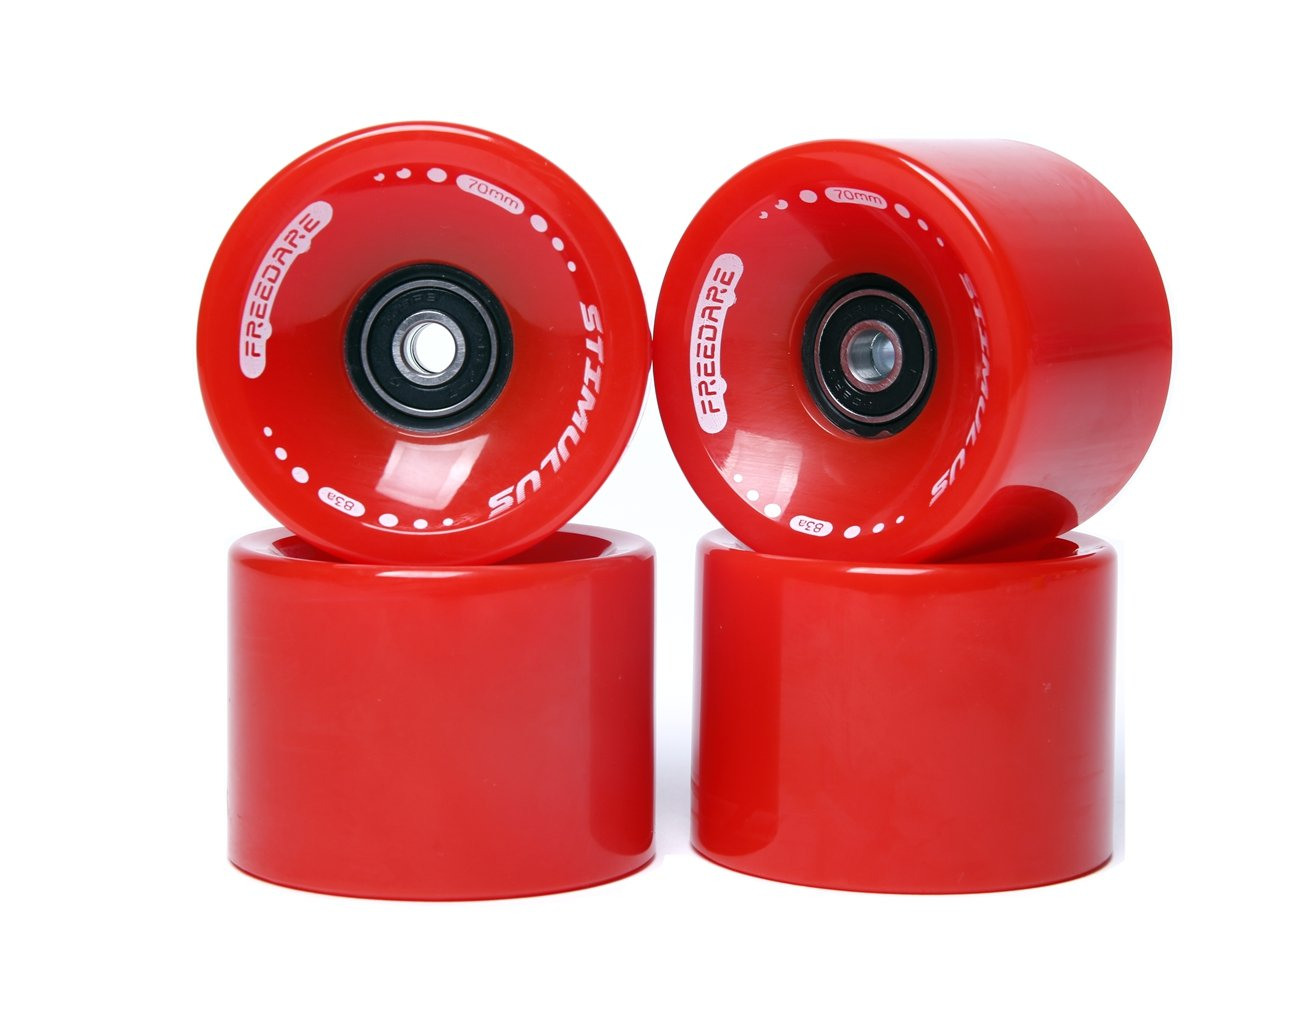 FREEDARE 70mm Longboard Wheels with ABEC-7 Bearings and Spacers(Red,Set of 4) by FREEDARE